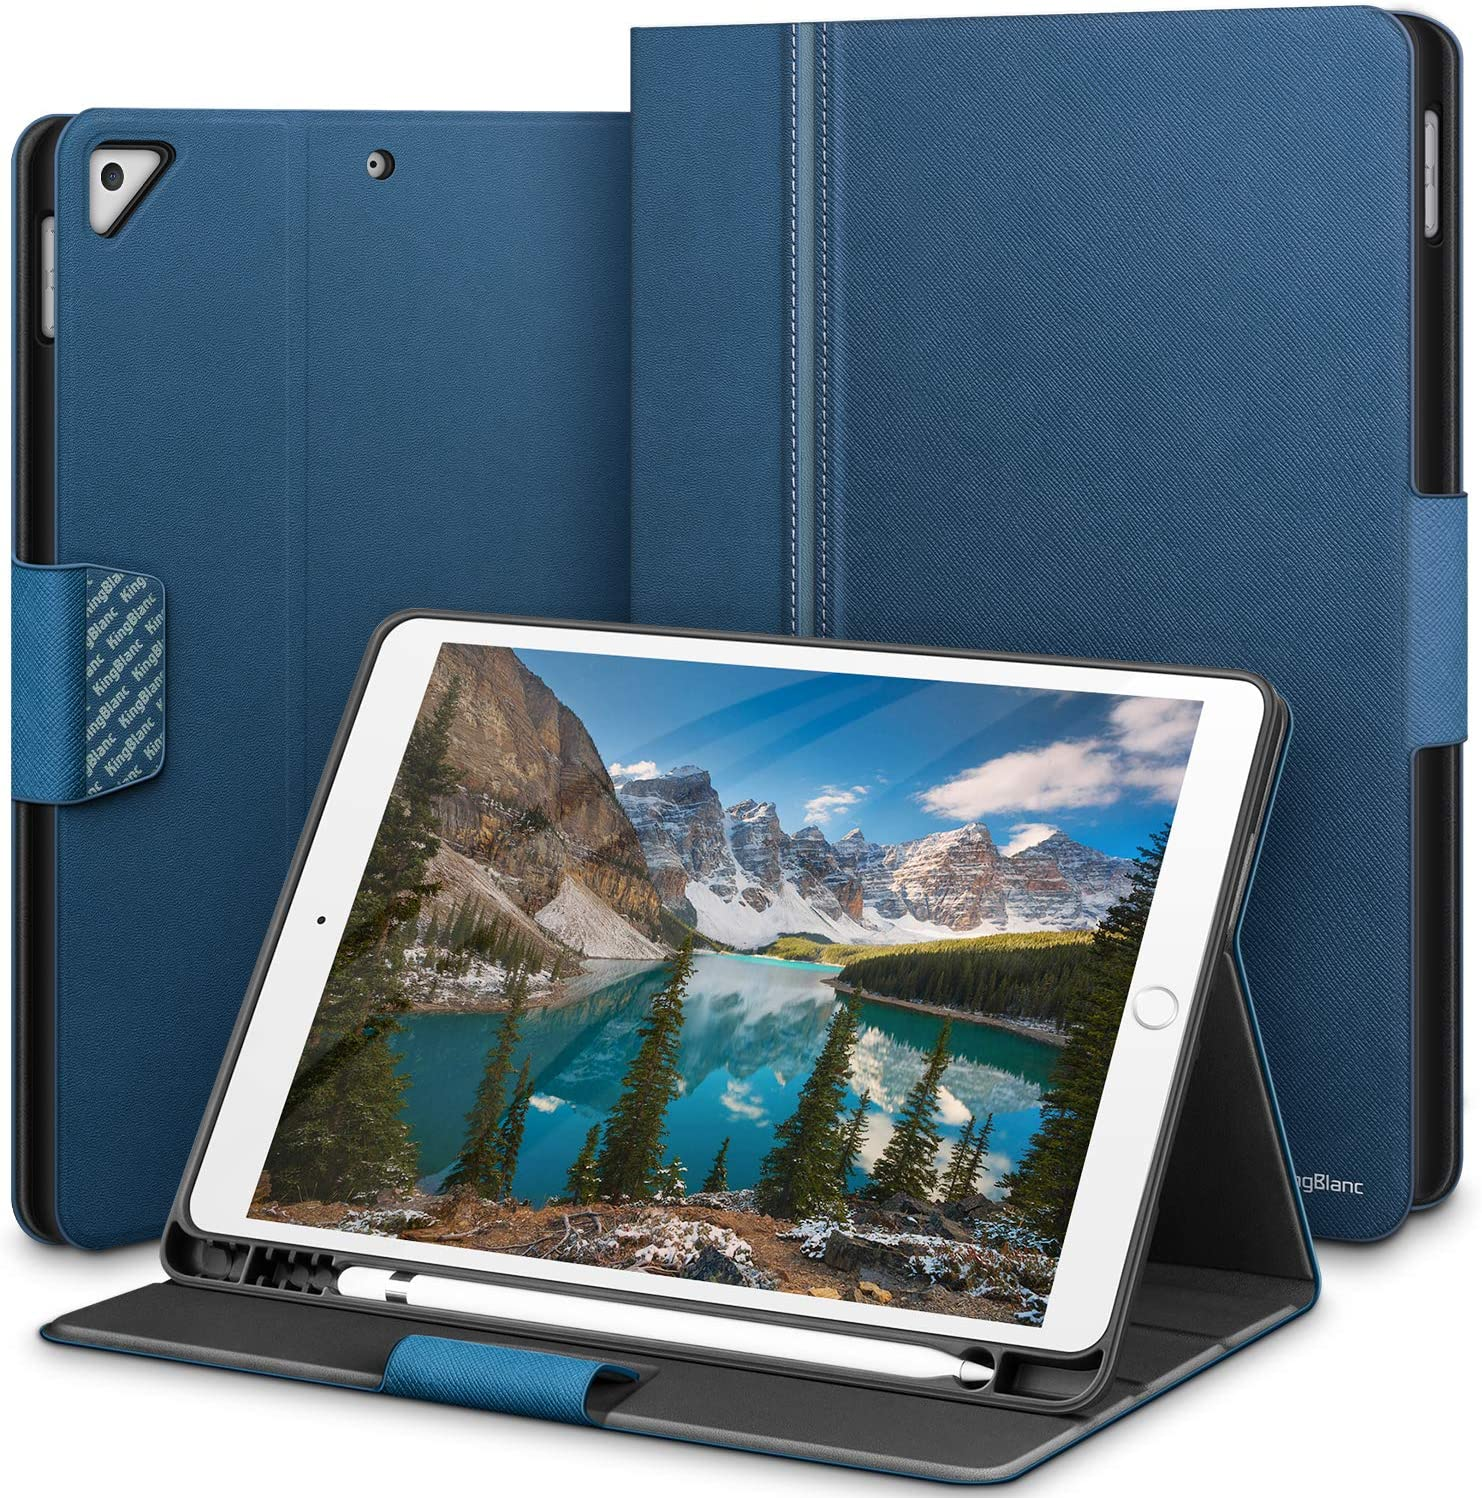 KingBlanc iPad 8th Generation 2020 /7th Generation 2019 Case, iPad 10.2 Case with Pencil Holder, Auto Sleep/Wake, Multi-Angle Viewing, Vegan Leather Folio Smart Cover for Apple iPad 10.2 inch, Blue